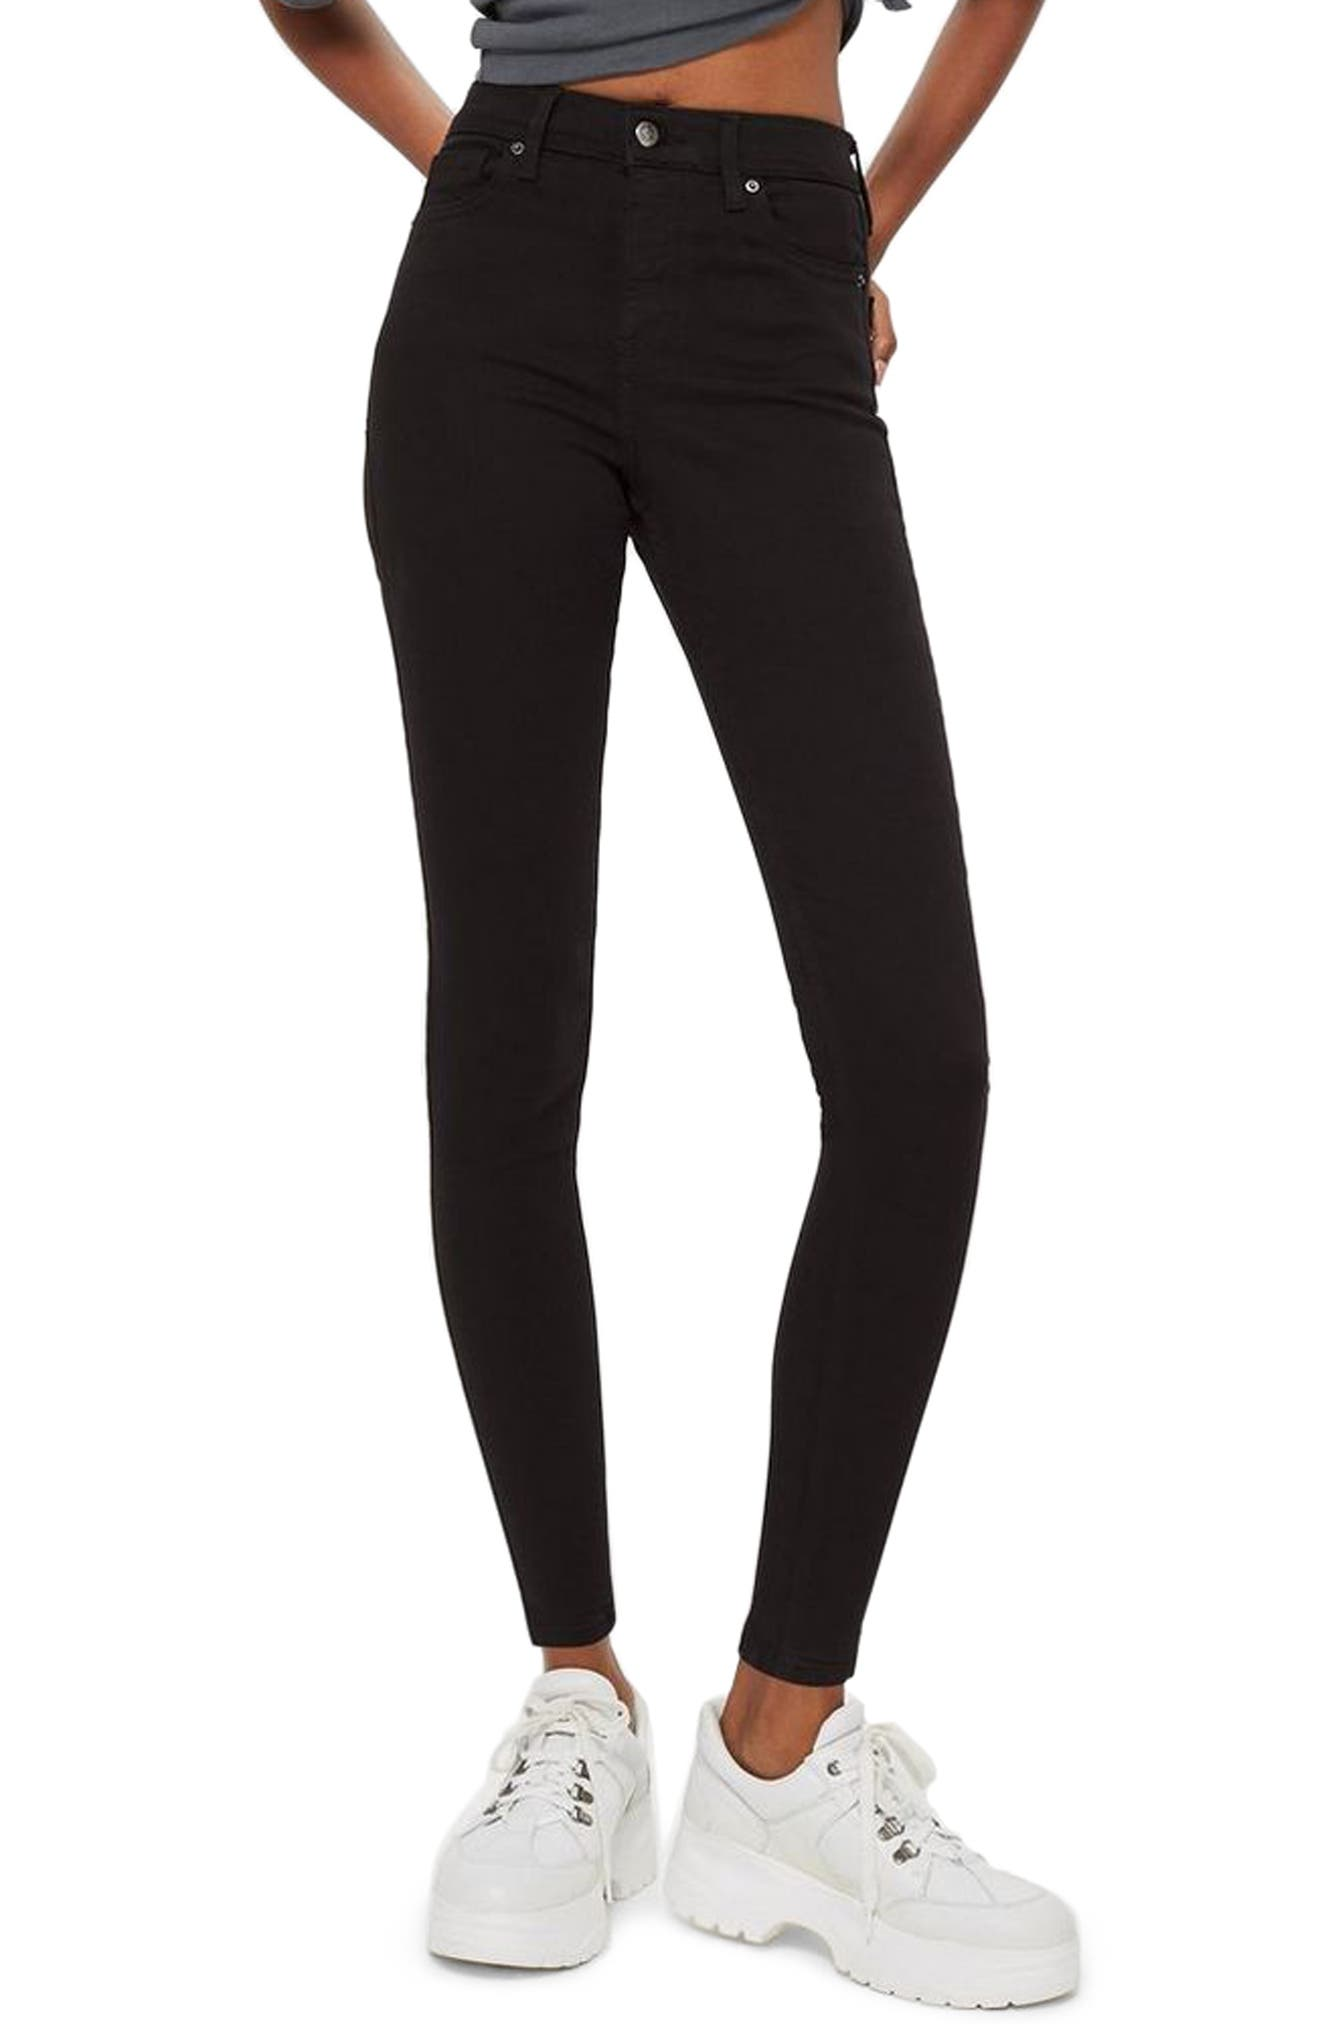 Jamie Black Jeans,                             Main thumbnail 1, color,                             BLACK